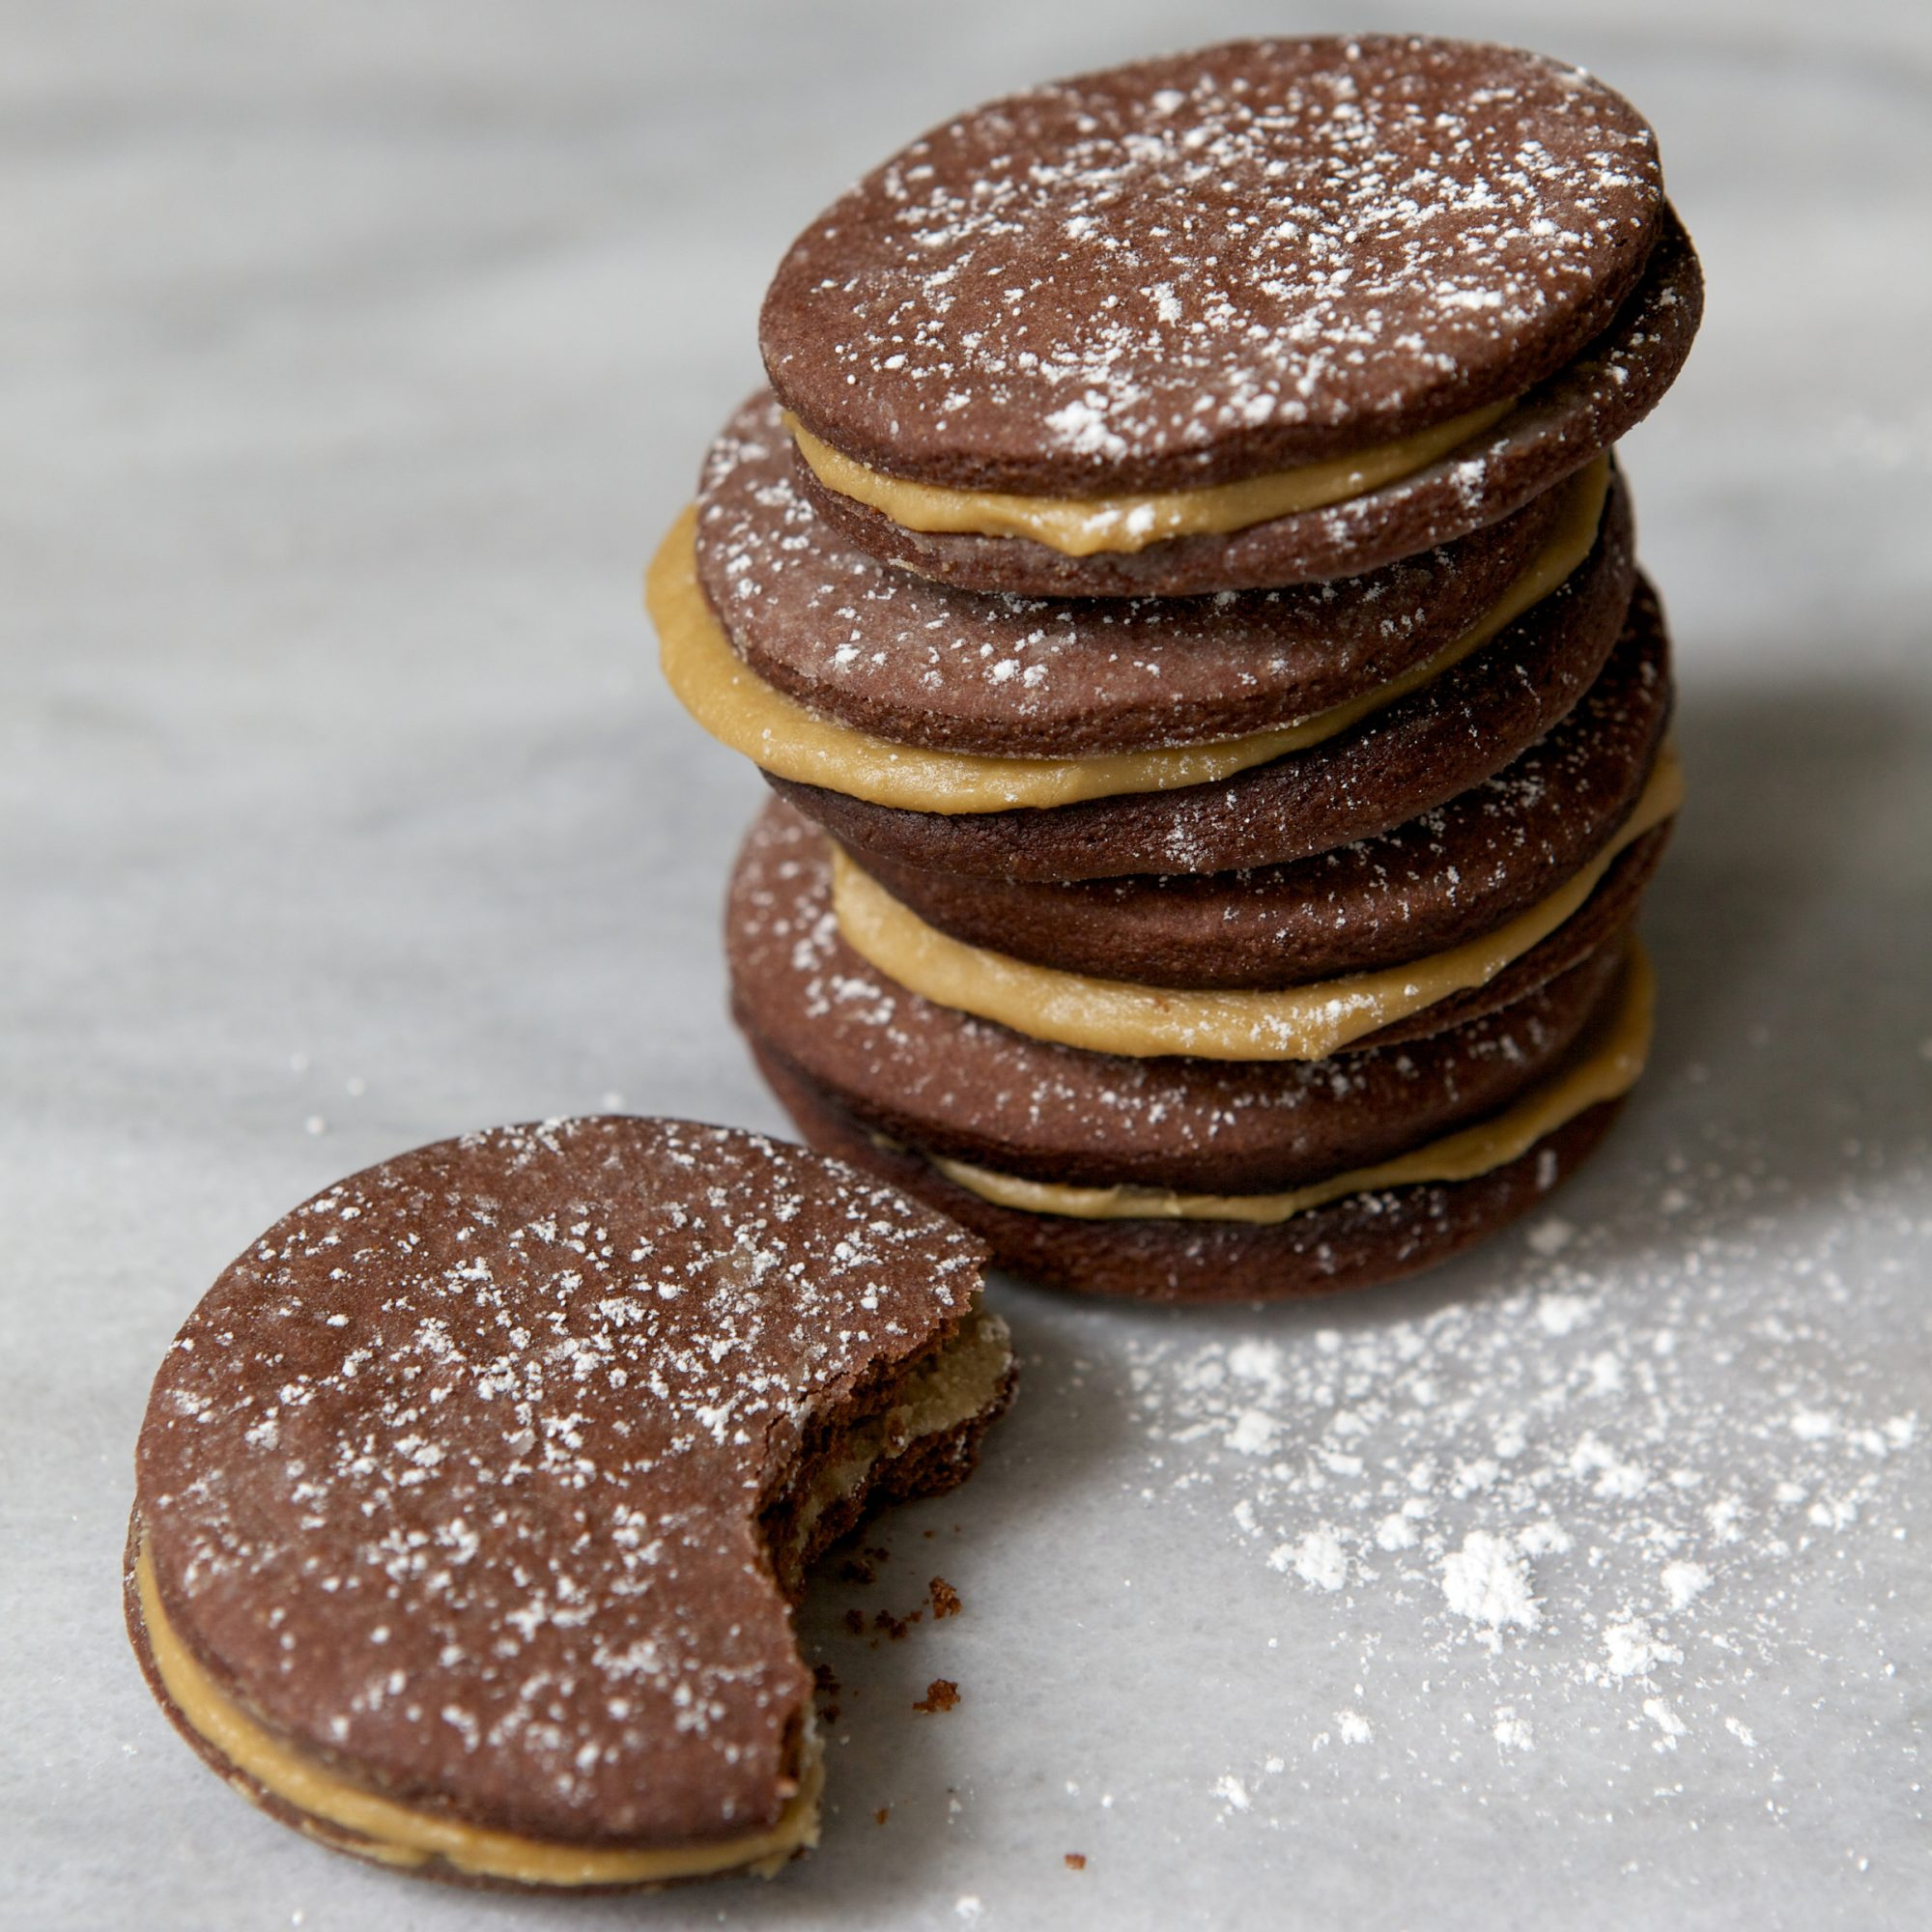 Butterscotch Chocolate Sandwich Cookies